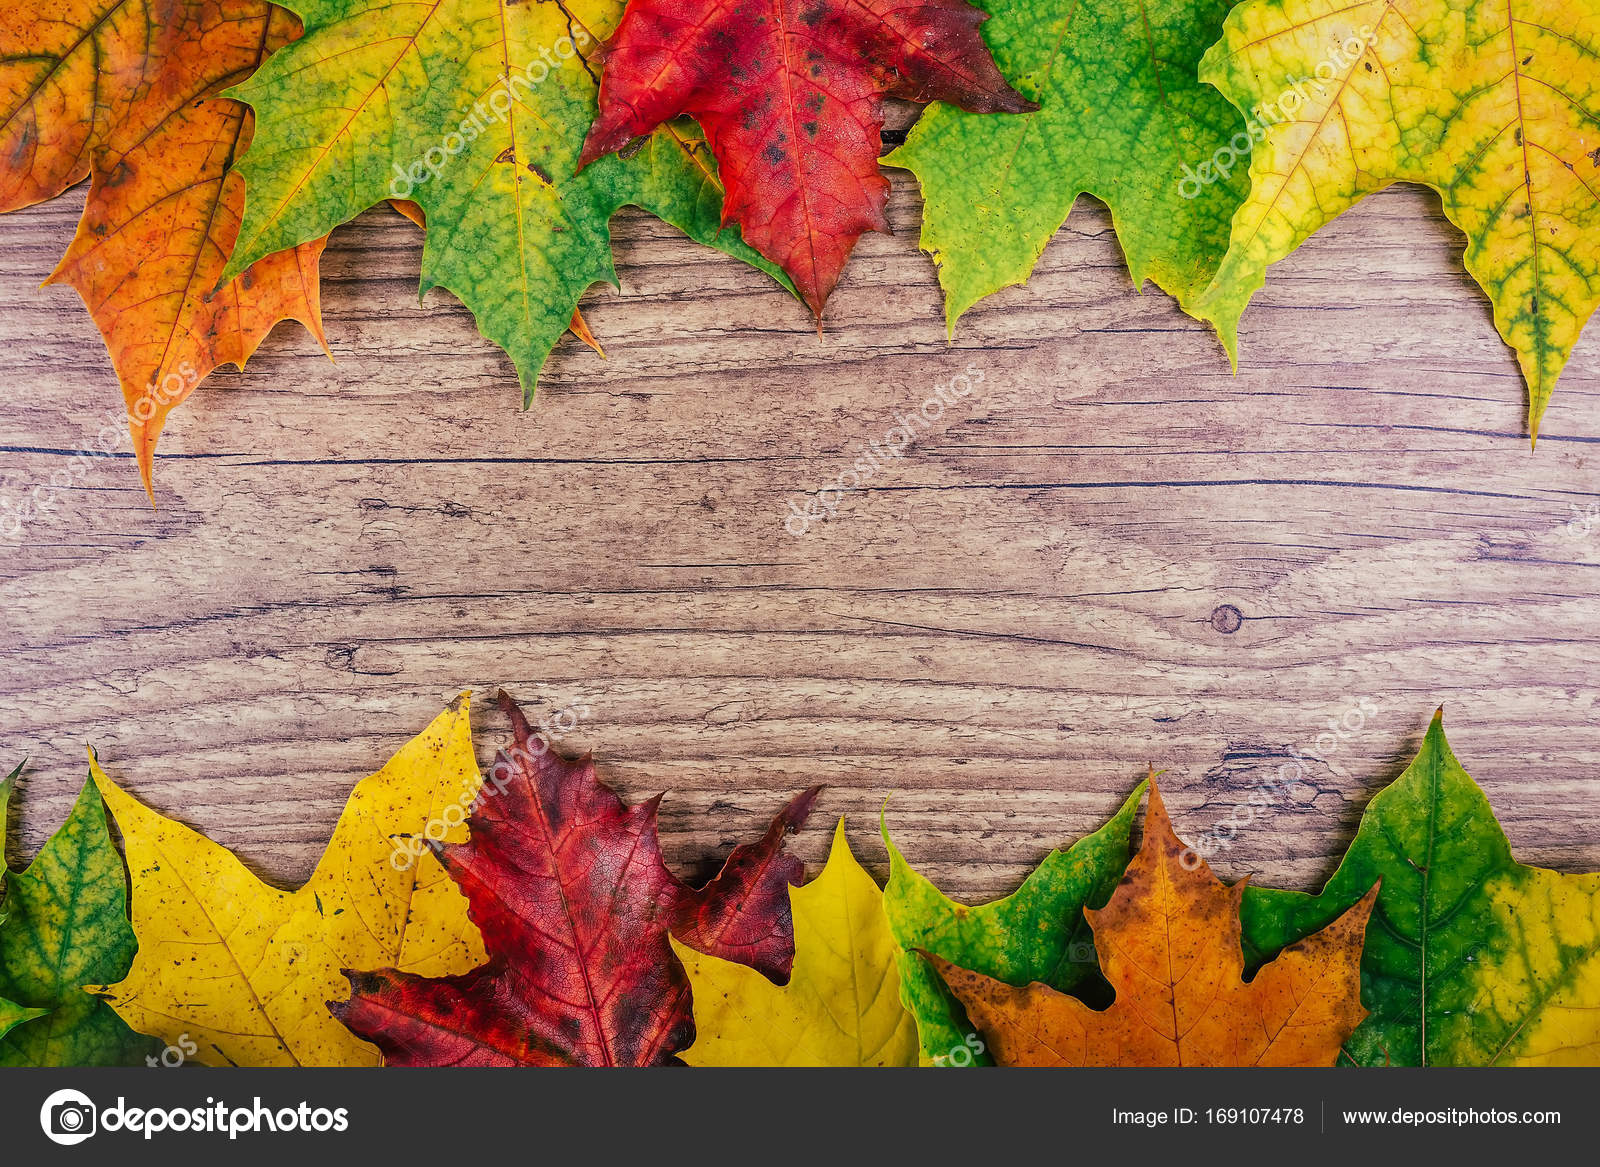 Autumn Background With Colorful Fall Maple Leaves On Rustic Wooden Table Thanksgiving Holidays Concept